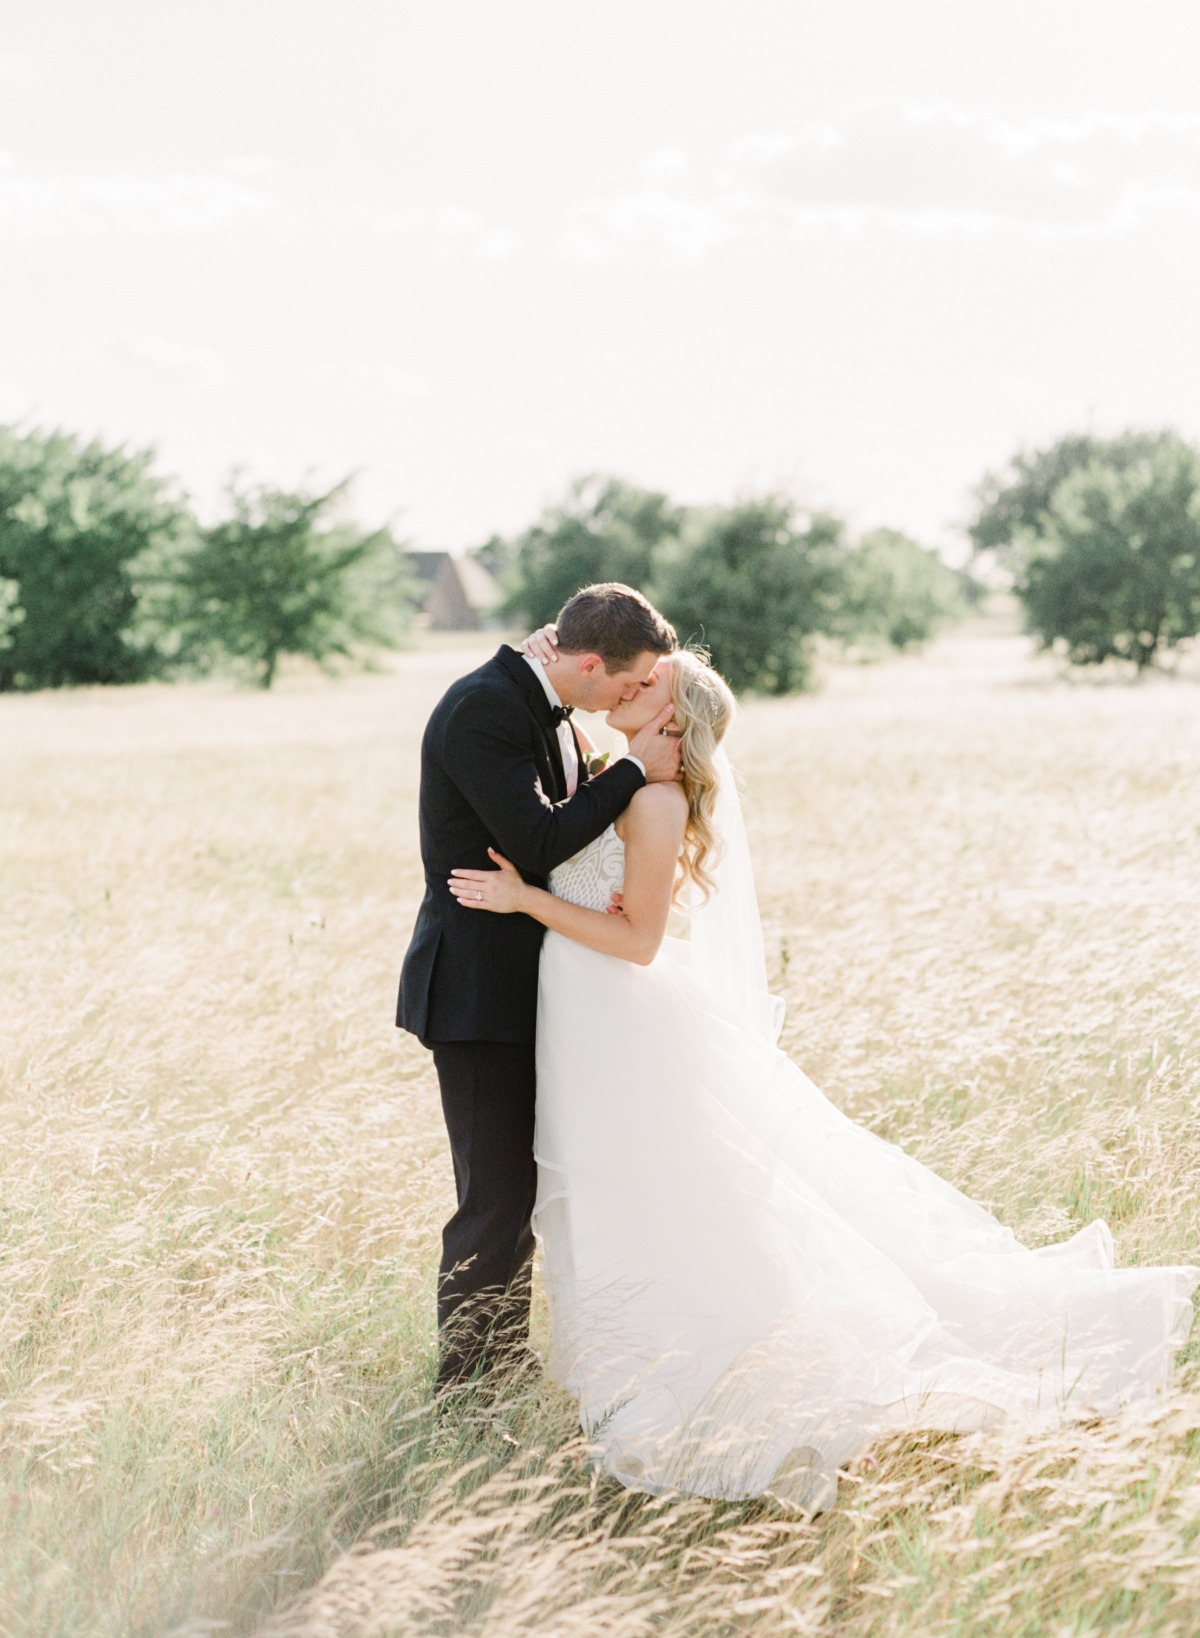 Dreamy white barn wedding in Texas